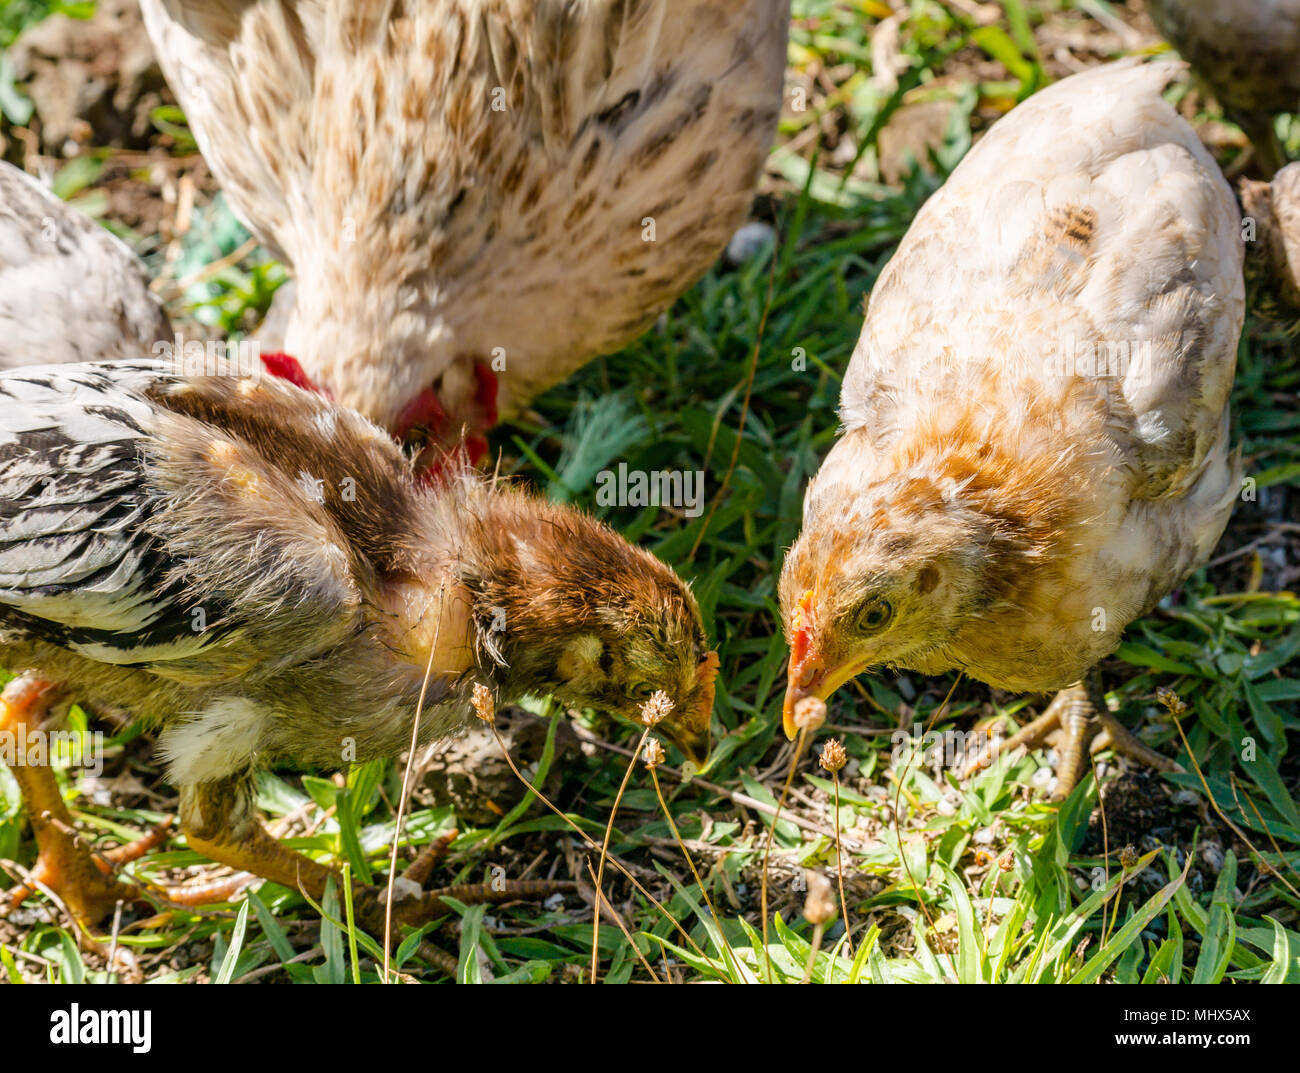 Domestic farmyard chickens, Easter Island, Chile. Female chicken with chicks feeding on the ground - Stock Image